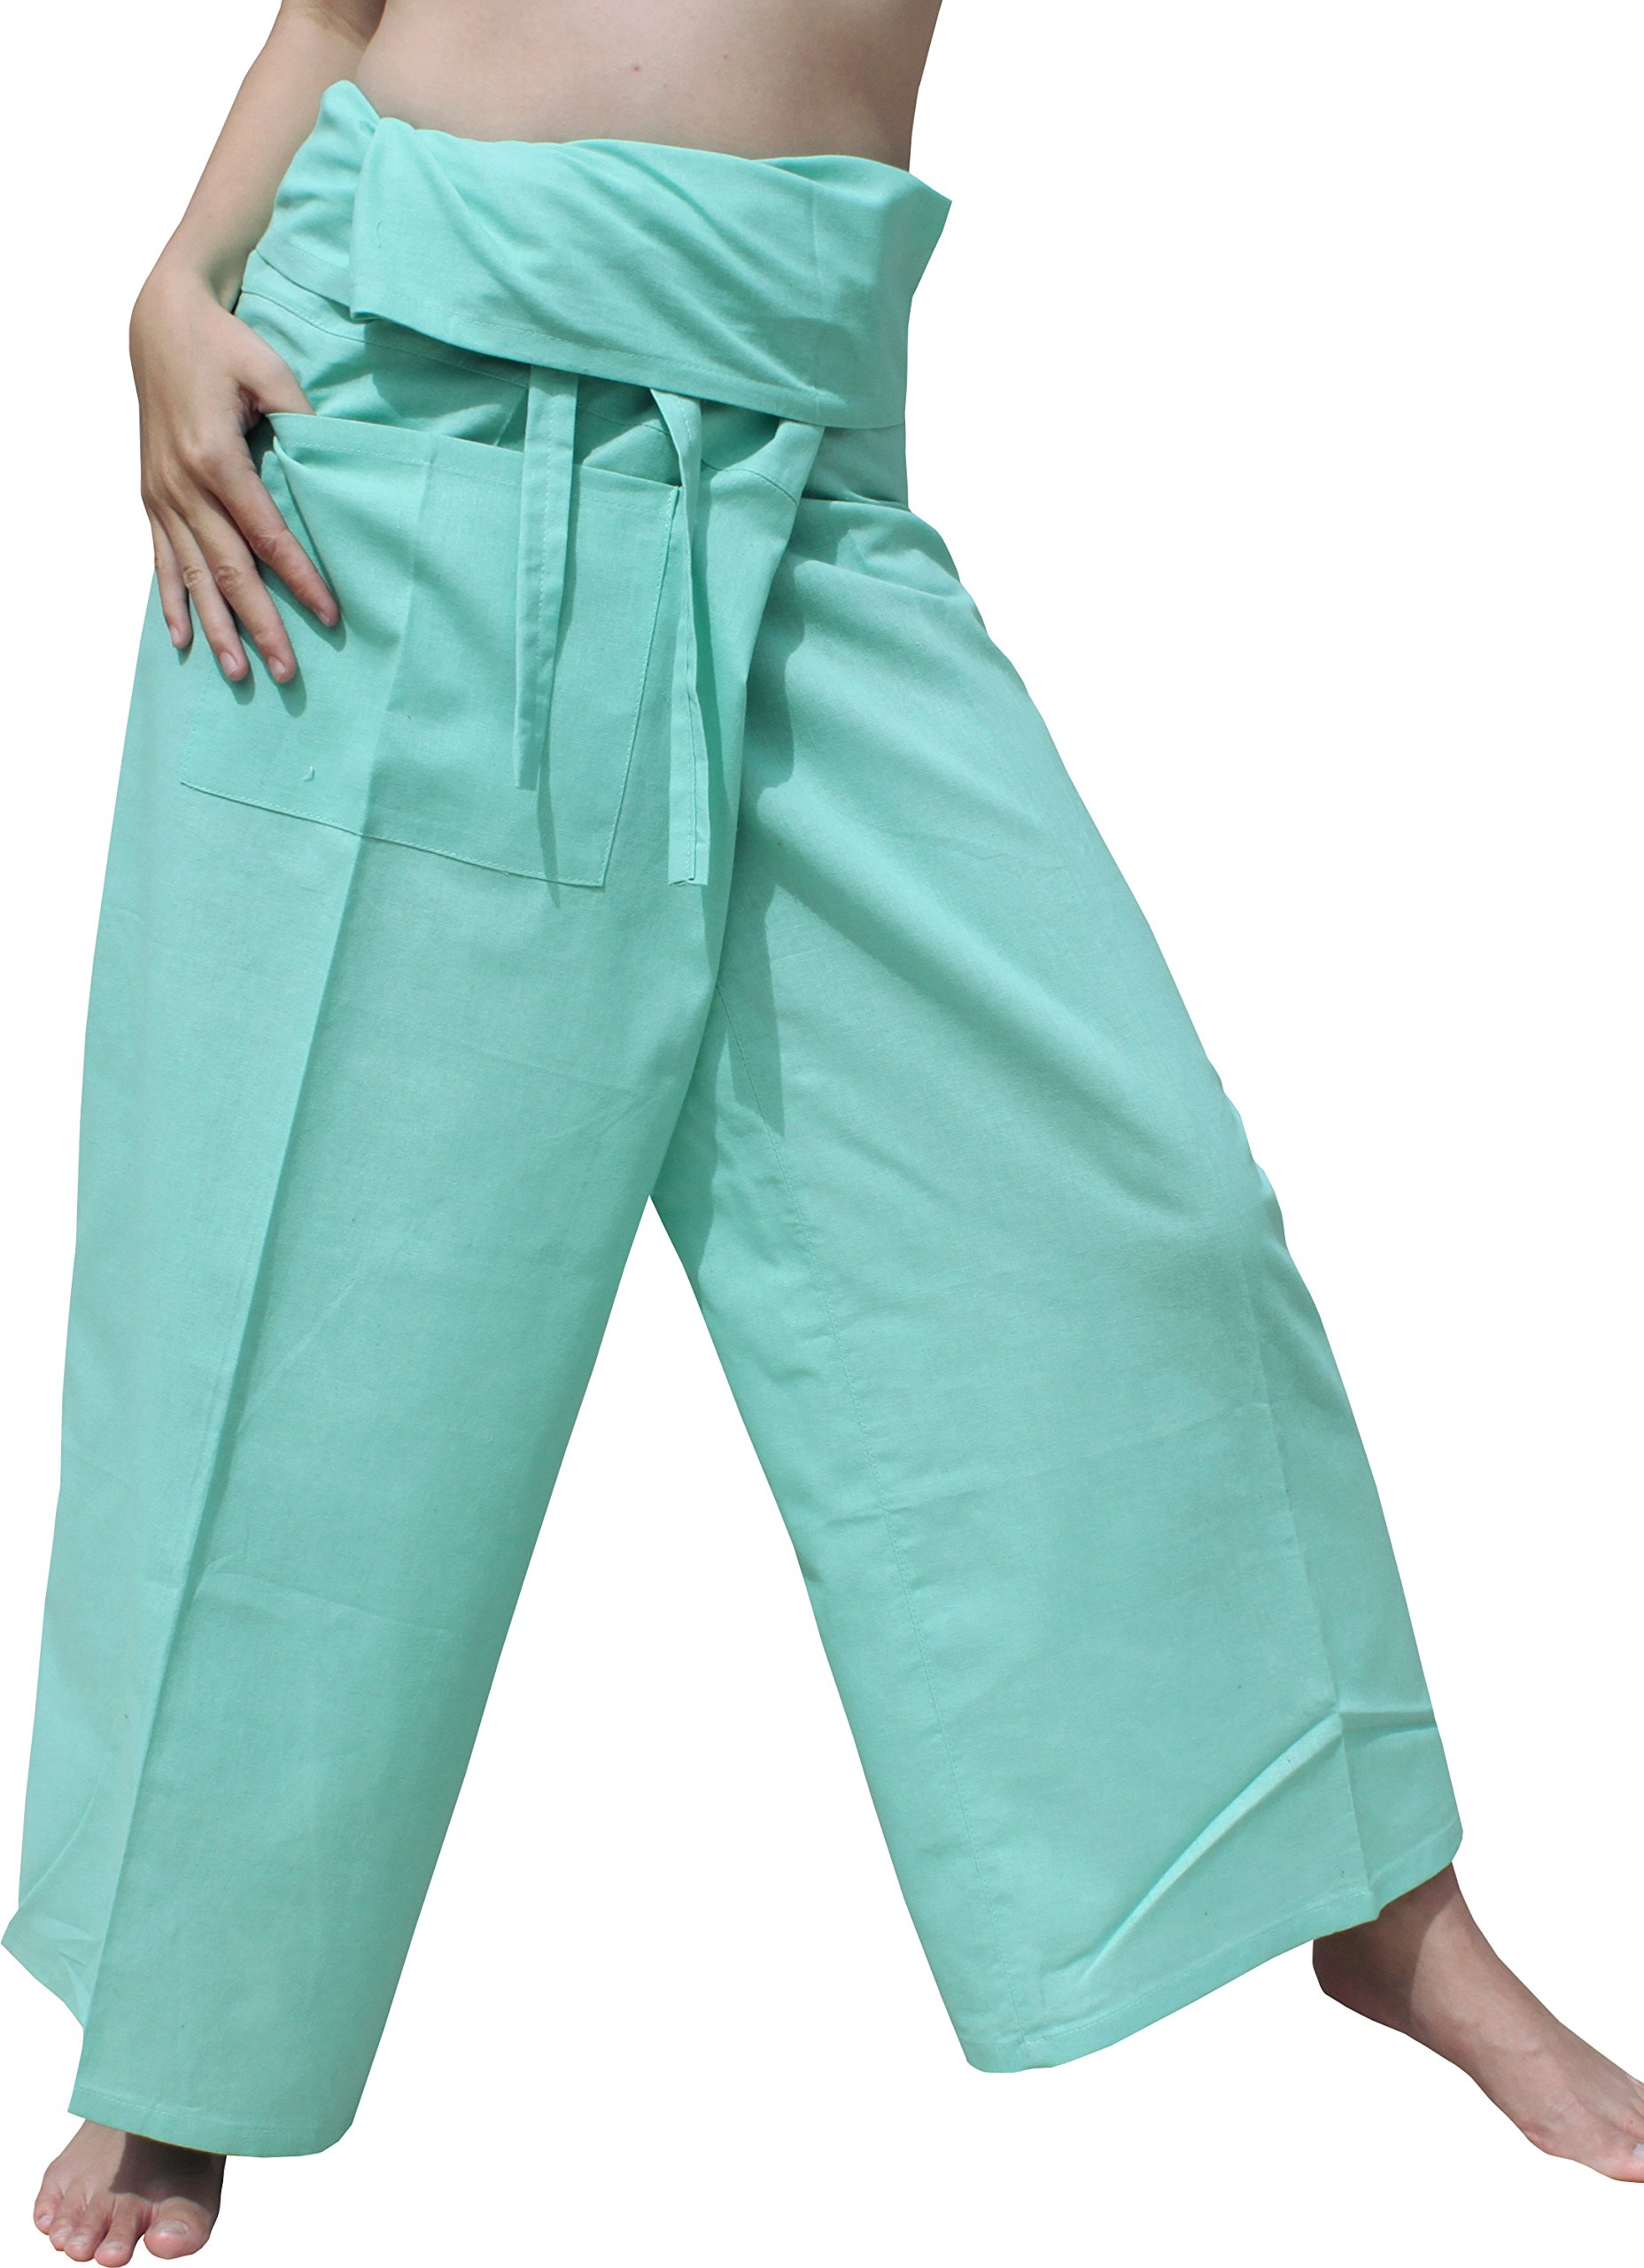 Raan Pah Muang Brand Light Summer Cotton Thai Plain Fisherman Wrap Pants Tall Cut, X-Large, Magic Mint Green by Raan Pah Muang